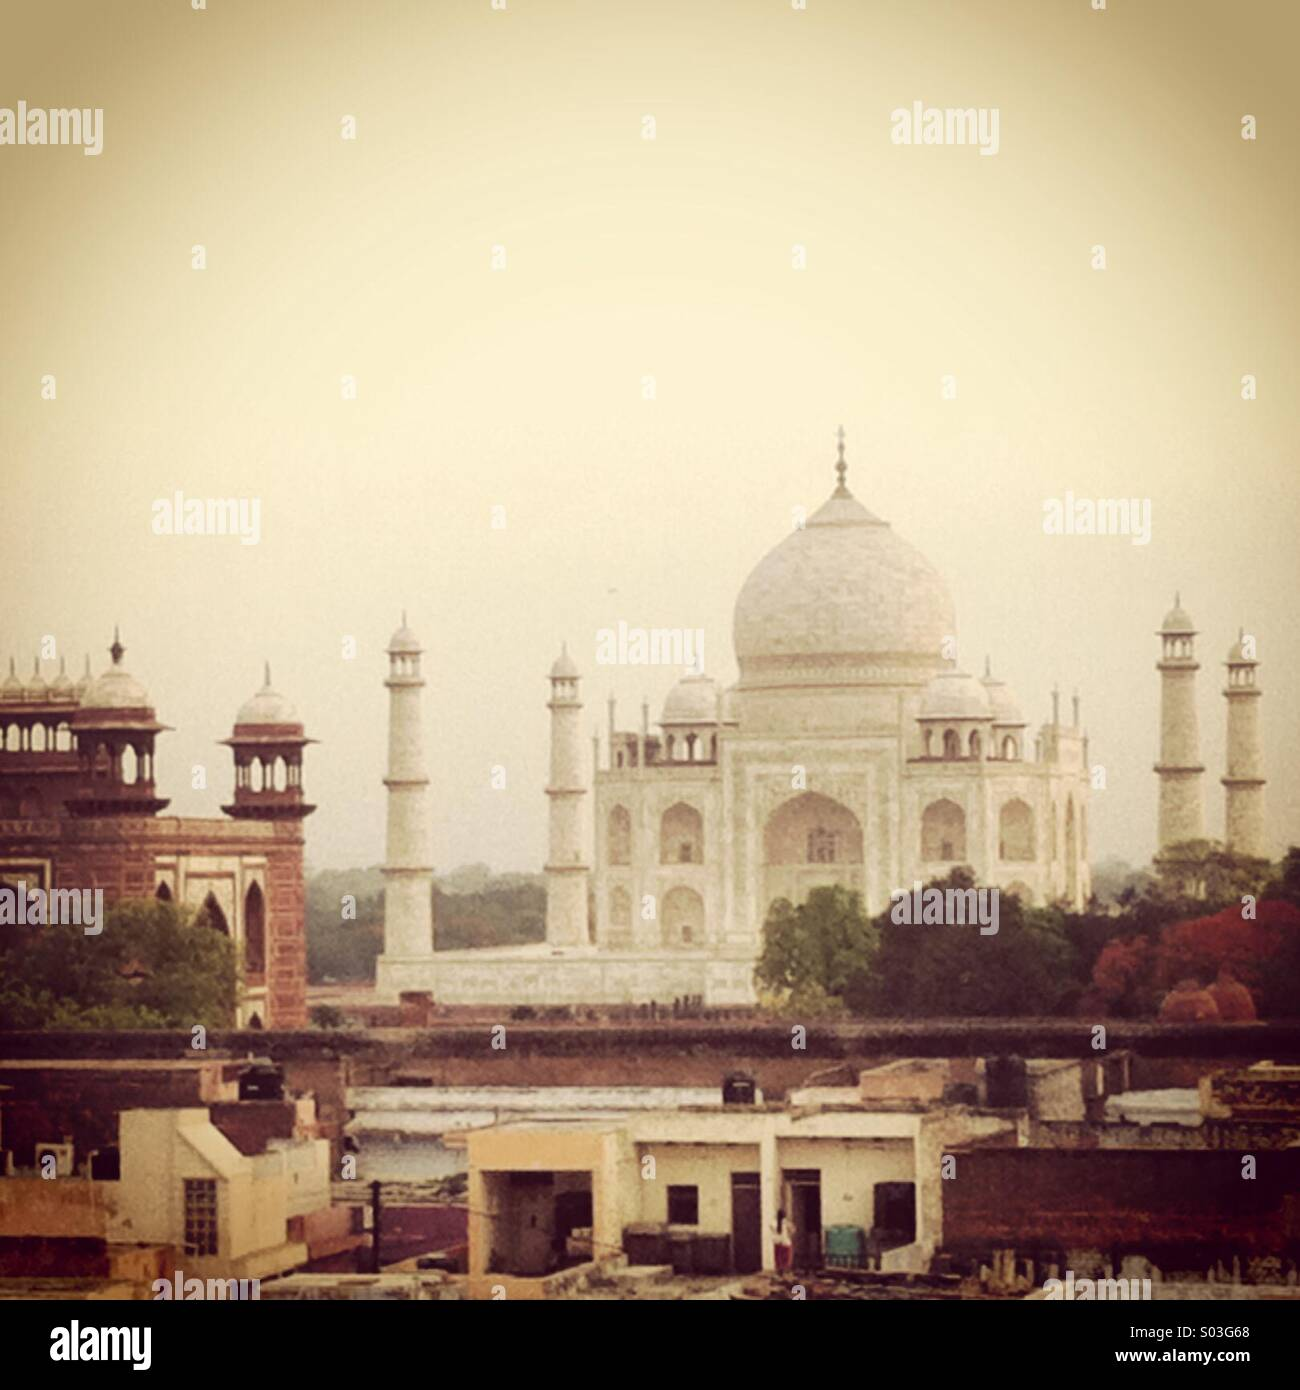 This is a view of the great Taj Mahal from taken from the south gate early in the morning. - Stock Image